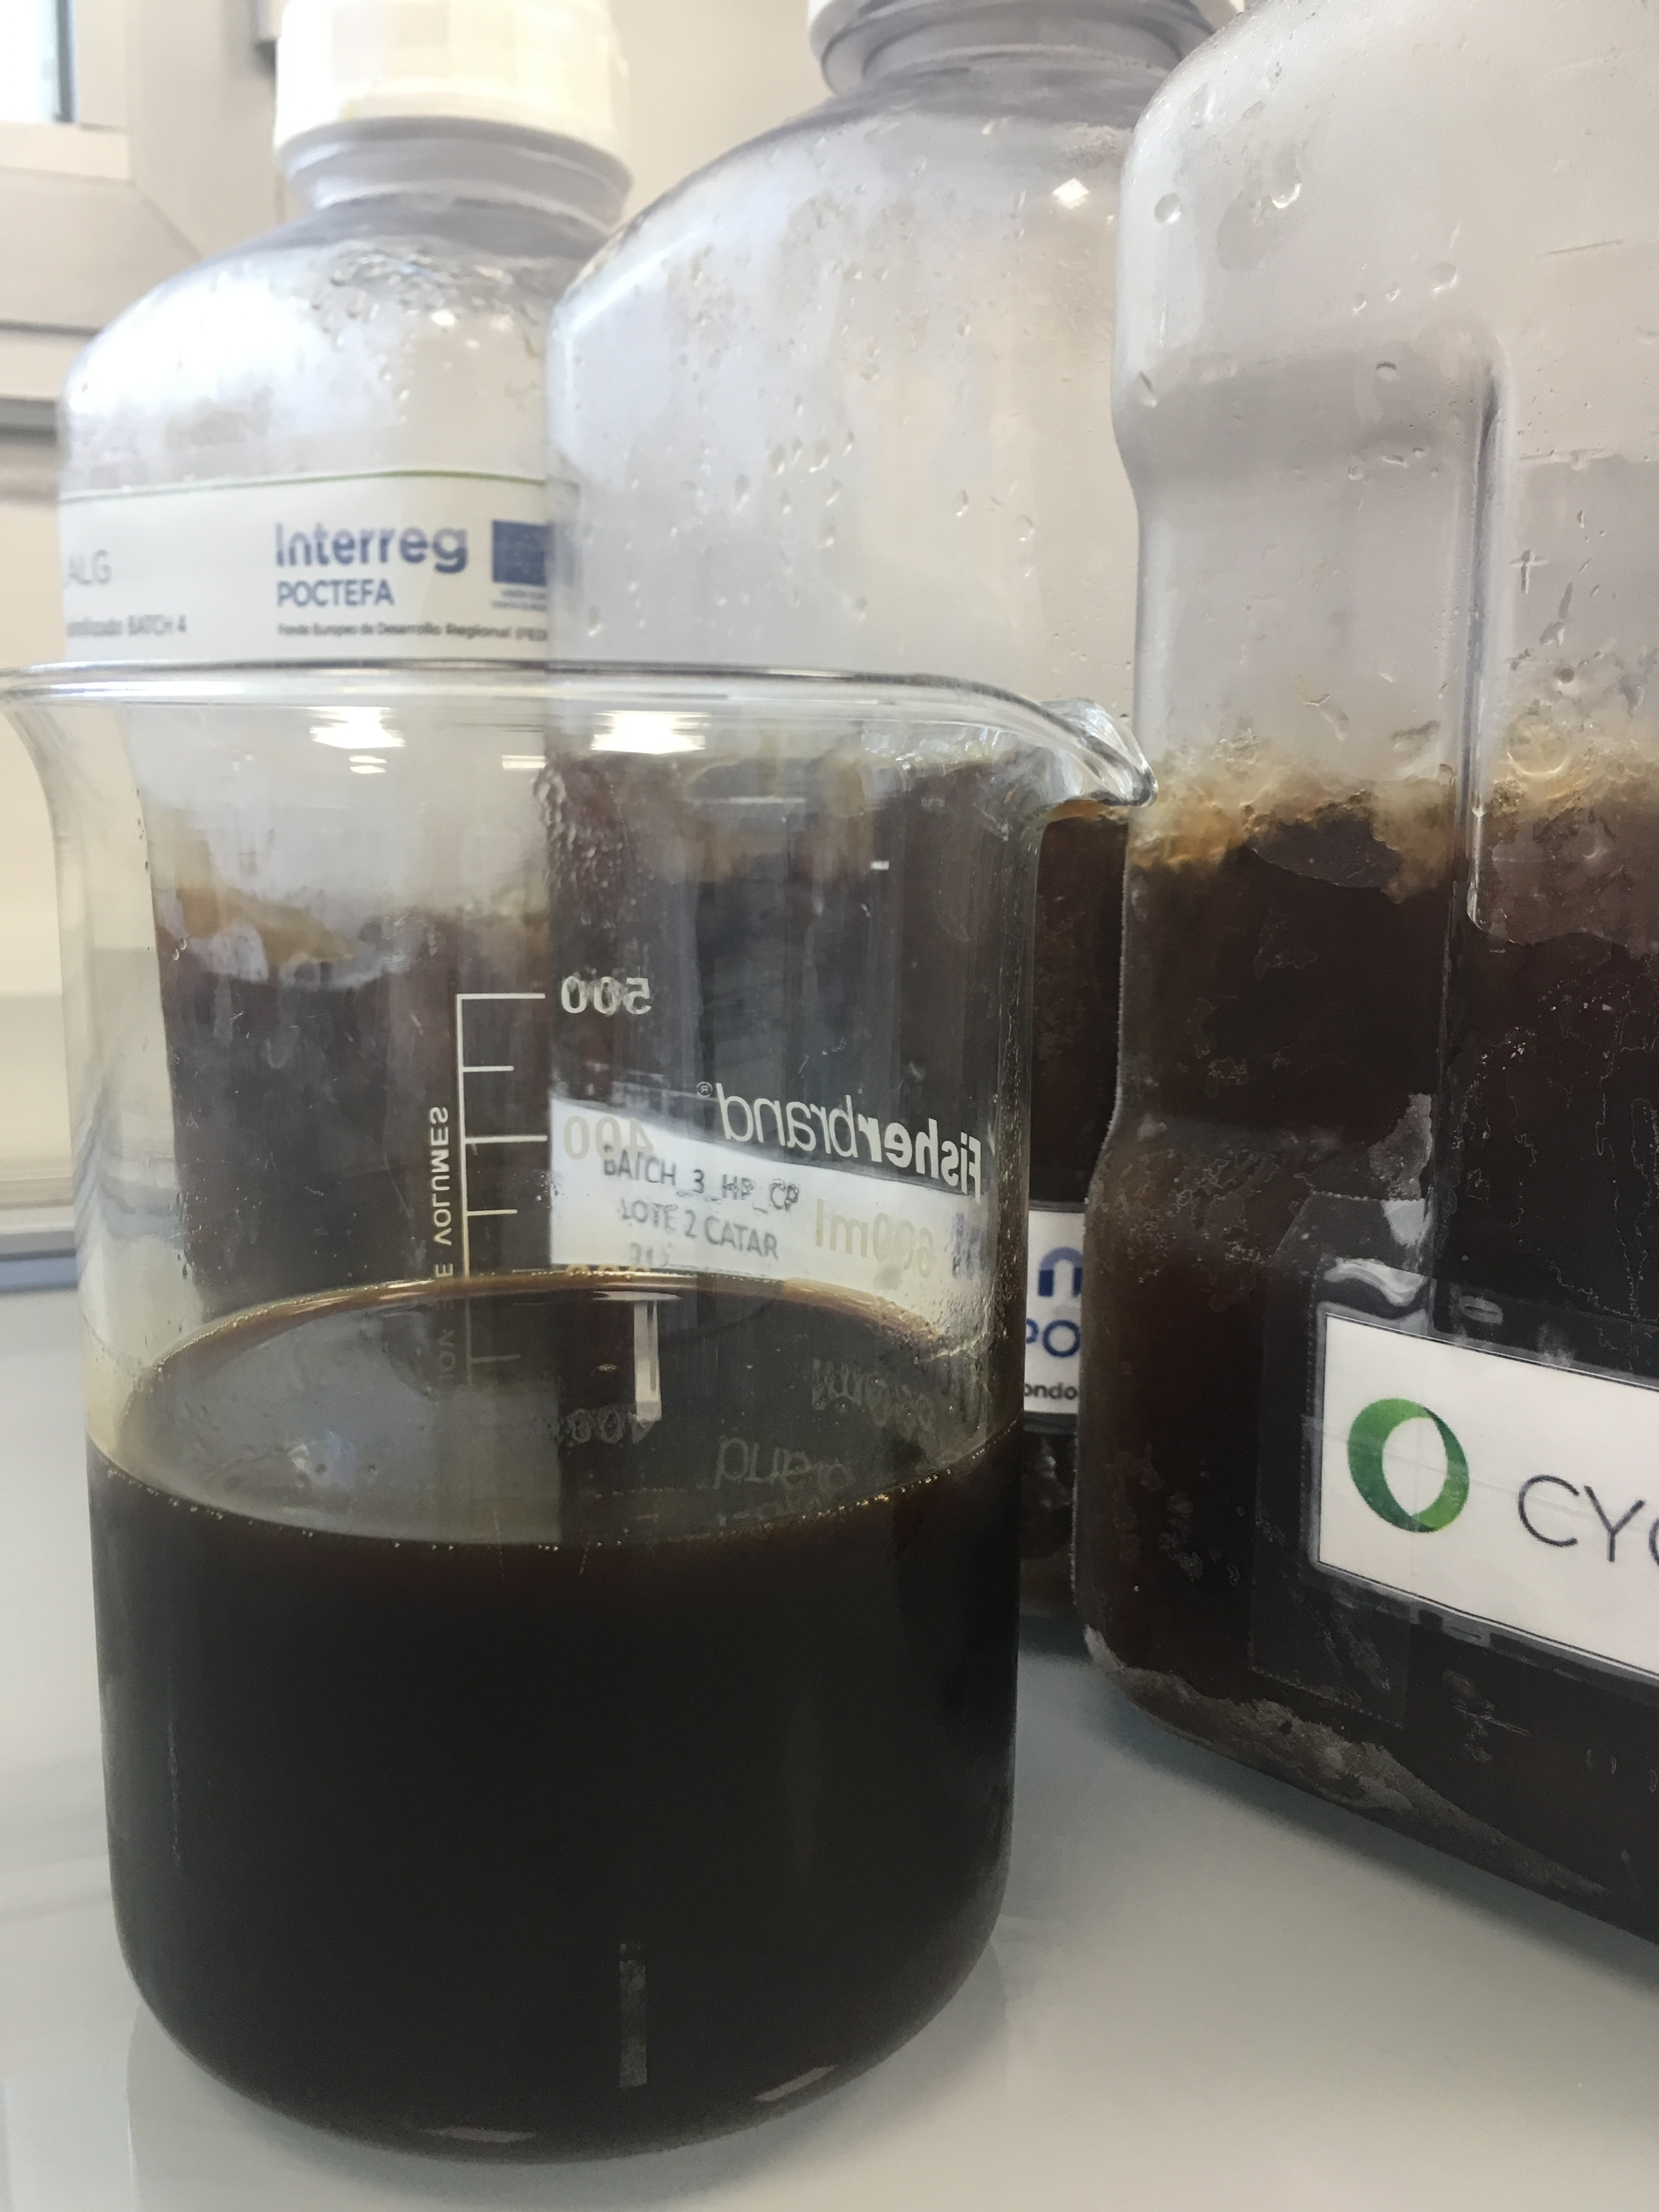 Harvested microalgae biomass obtained at pilot plant in the Cyclalg Project ©Sonia Castañón de la Torre, 2018